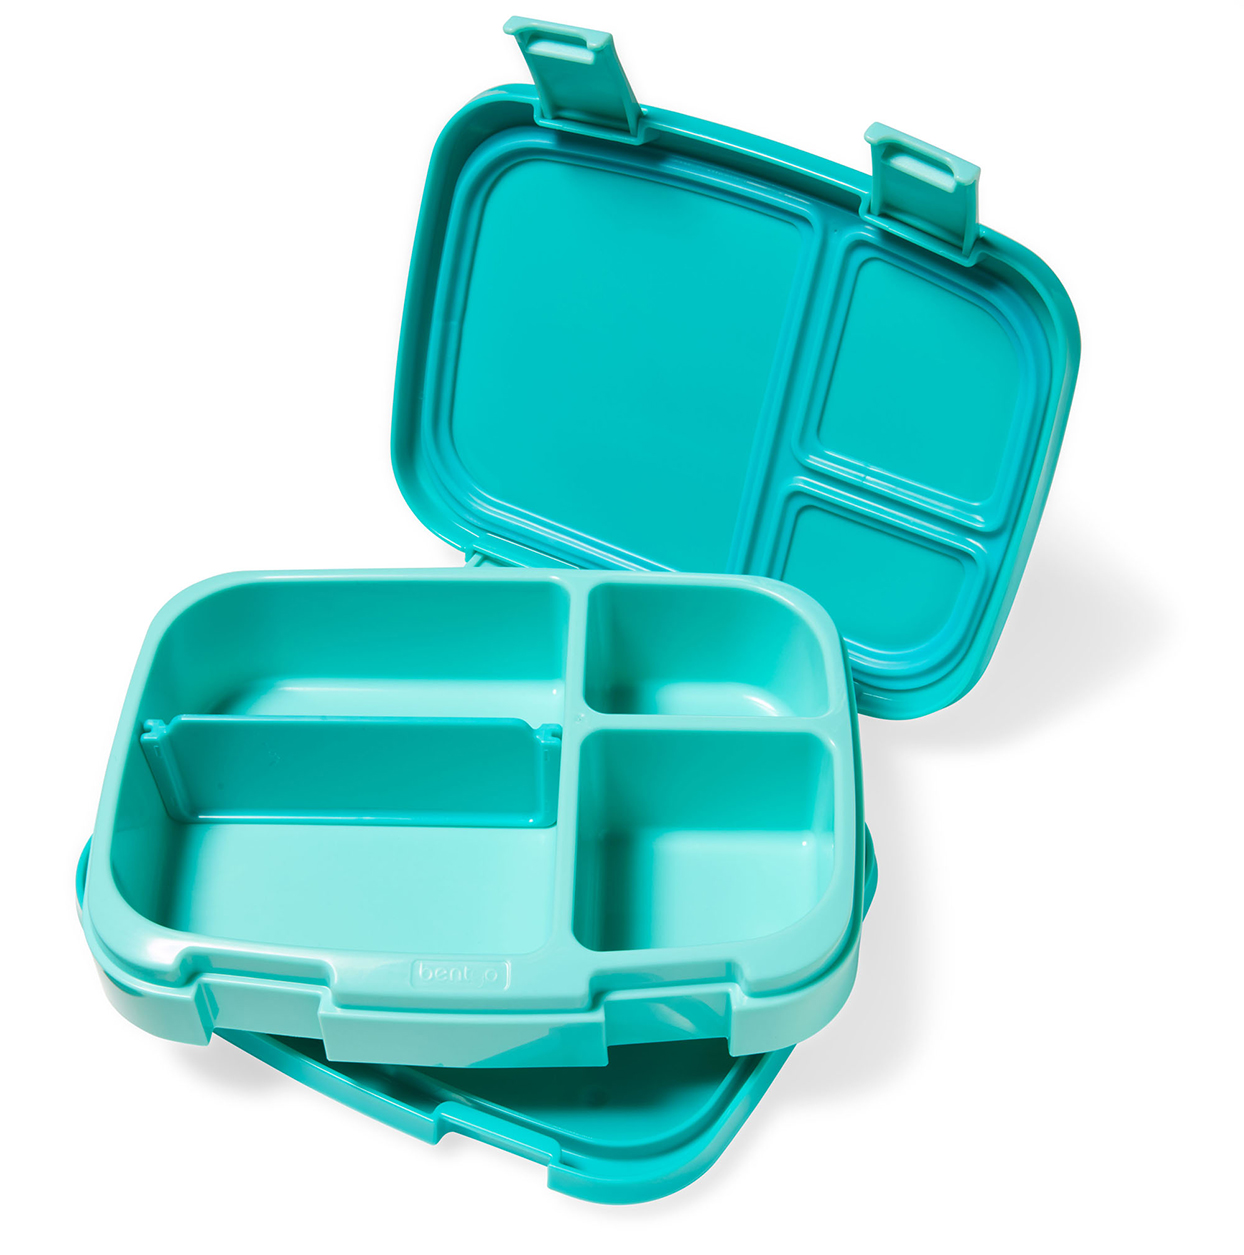 Teal lunch boxes